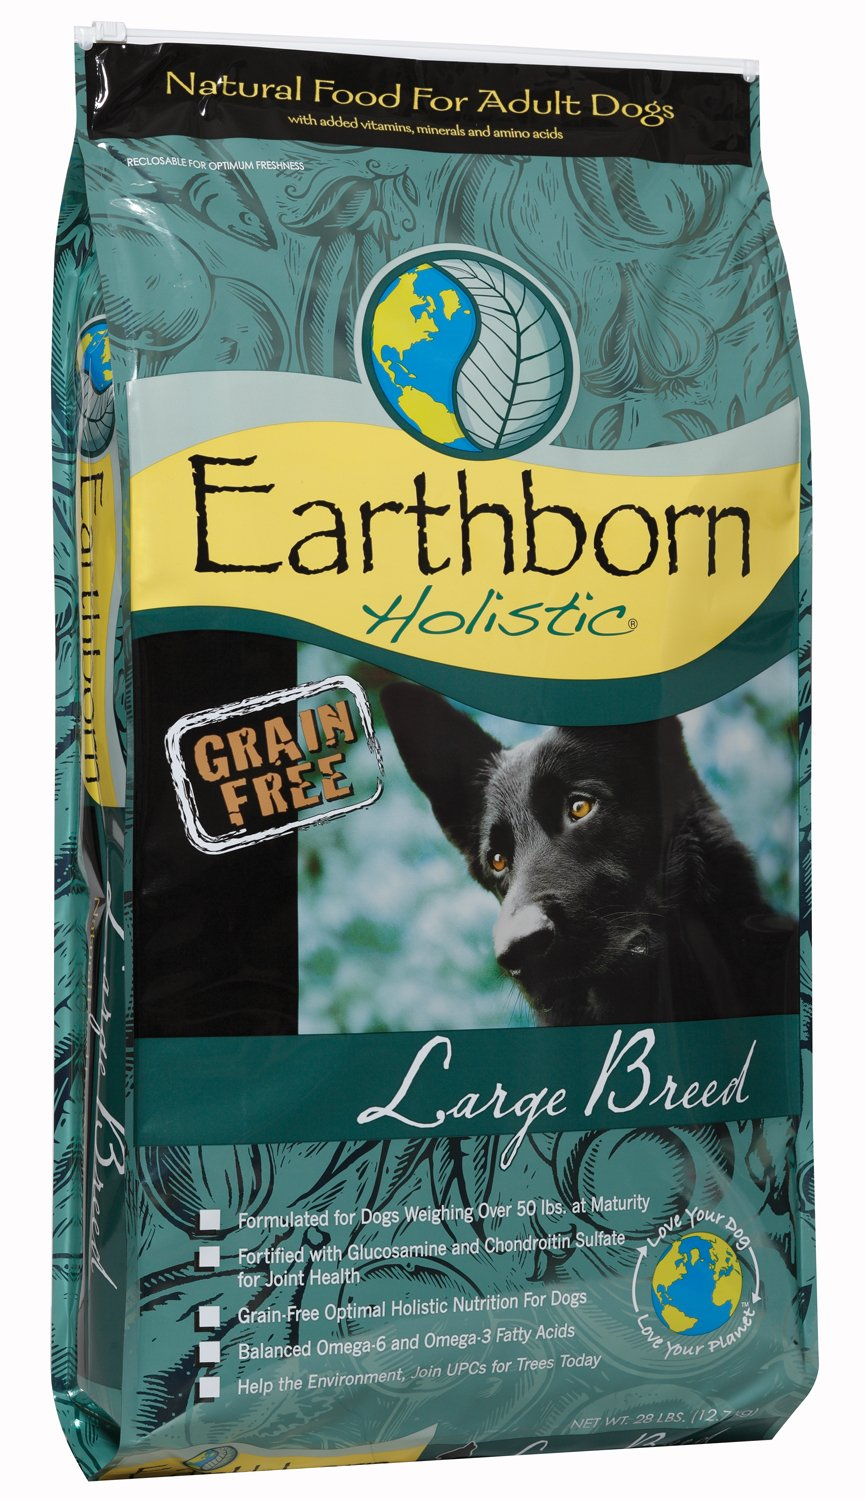 Earthborn Holistic Grain Free Large Breed Dry Dog Food Review